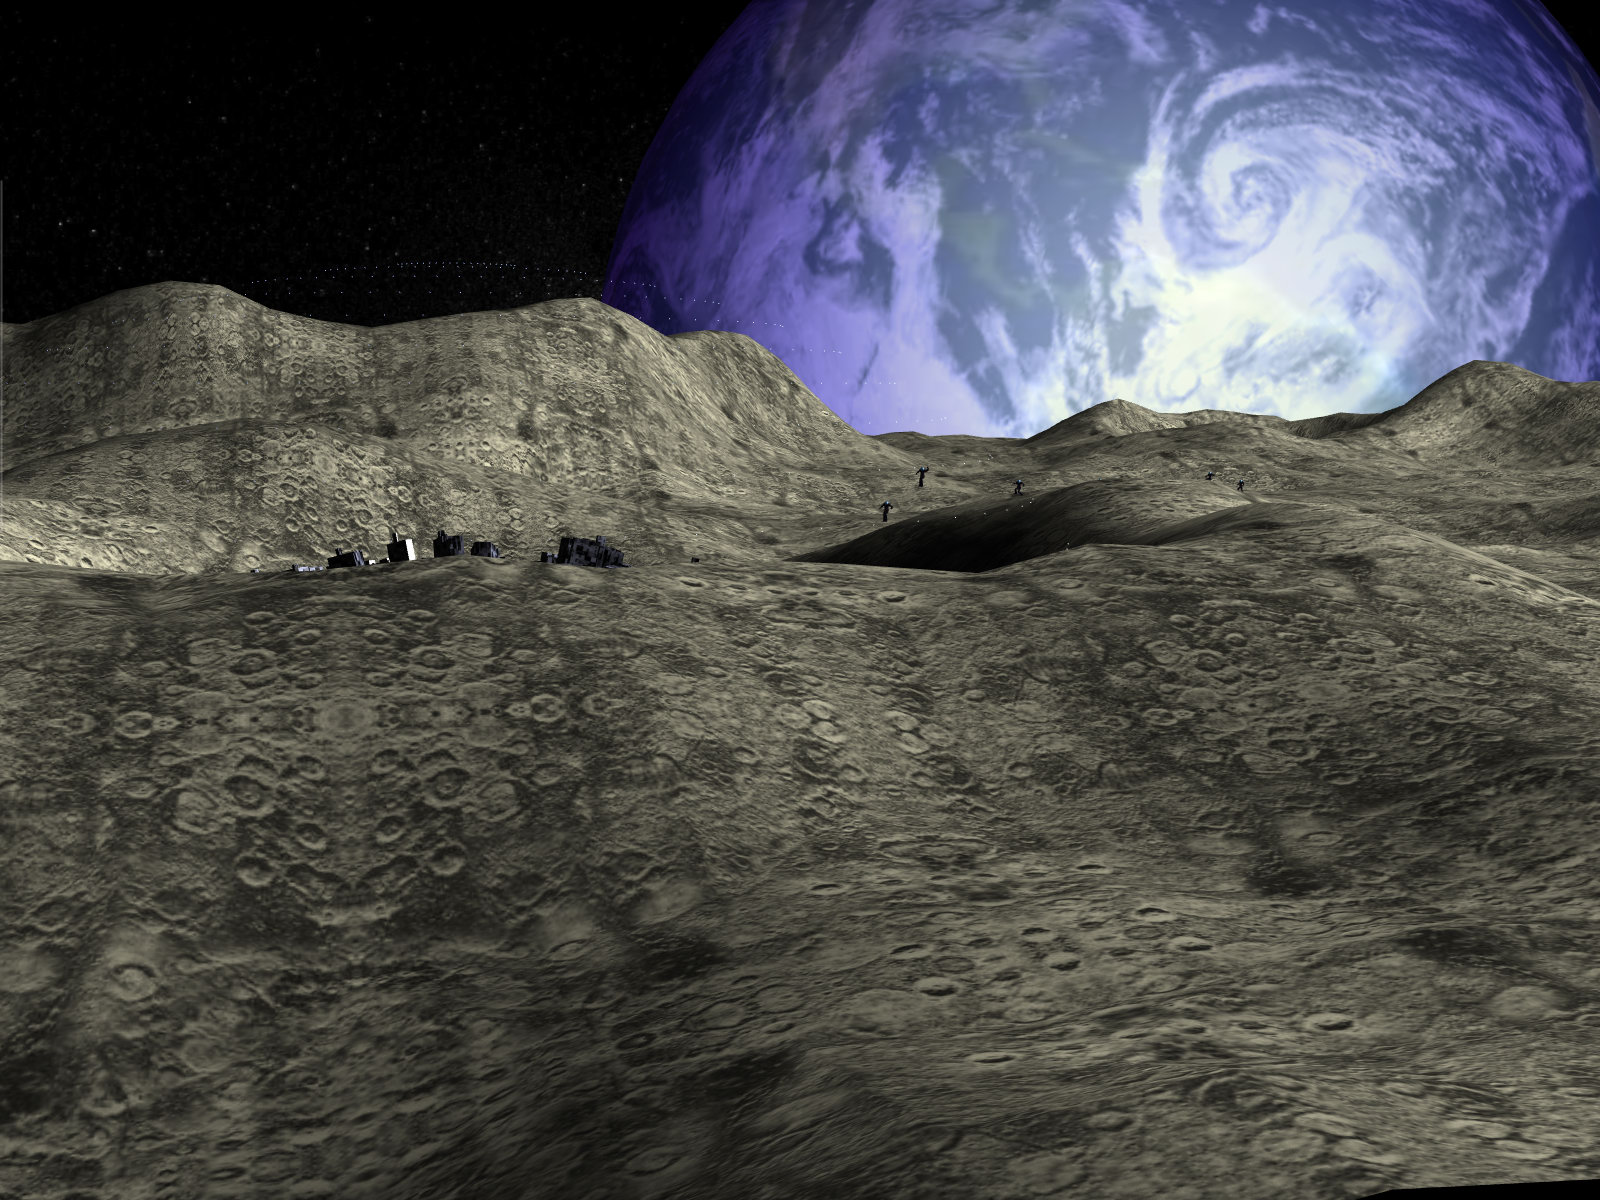 Moon base wallpaper wallpapersafari for Outer space landscape